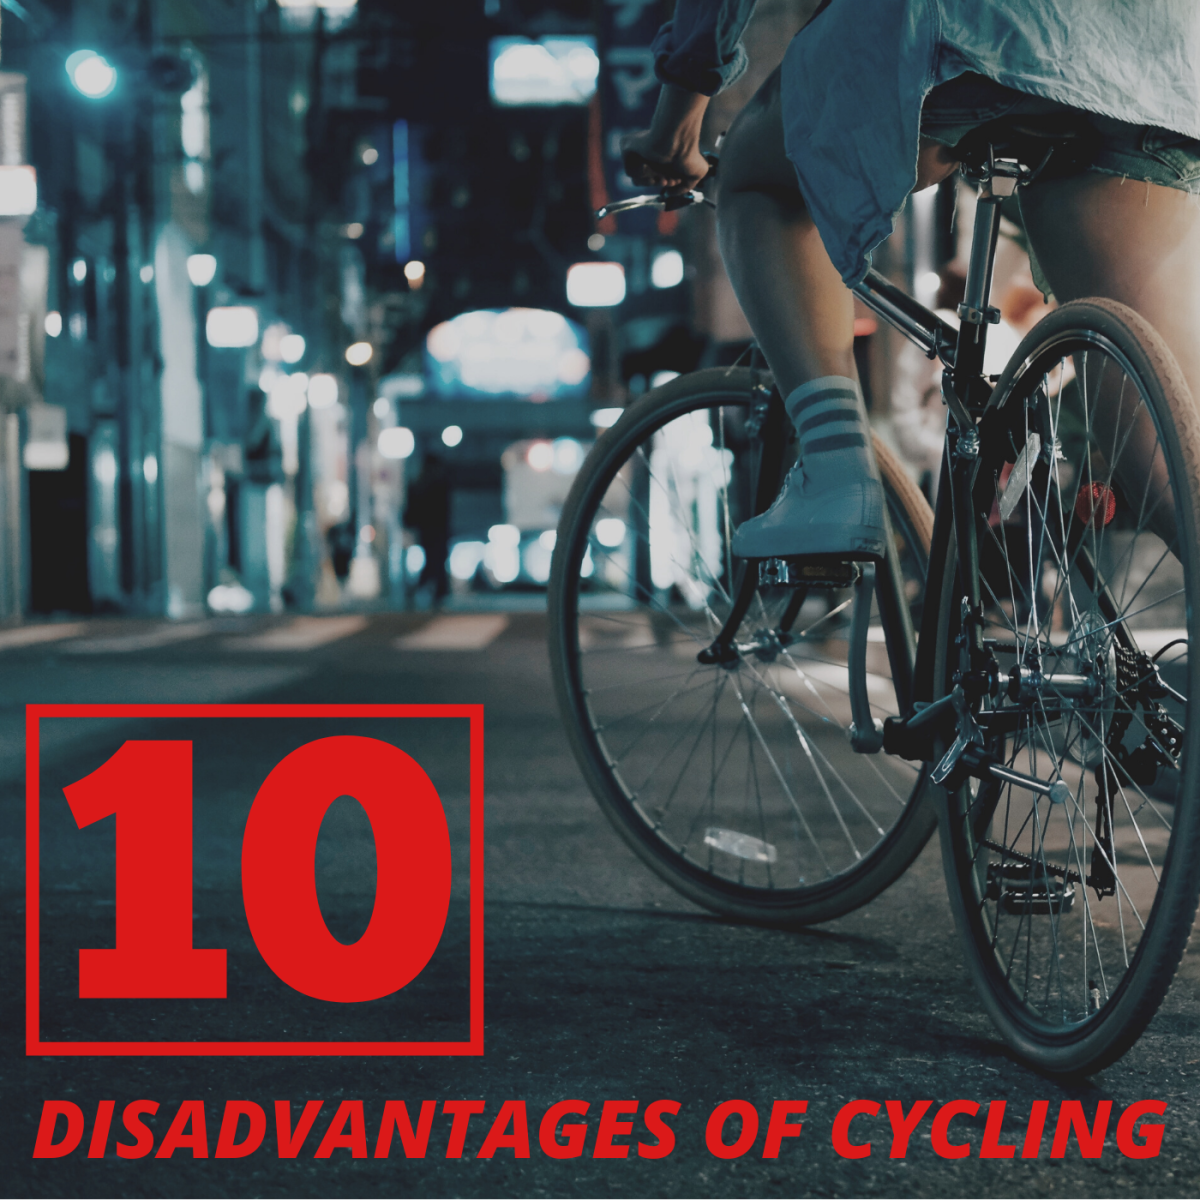 Riding a bike is fun, cheap, and eco-friendly, but like all modes of transportation, it comes with drawbacks as well.